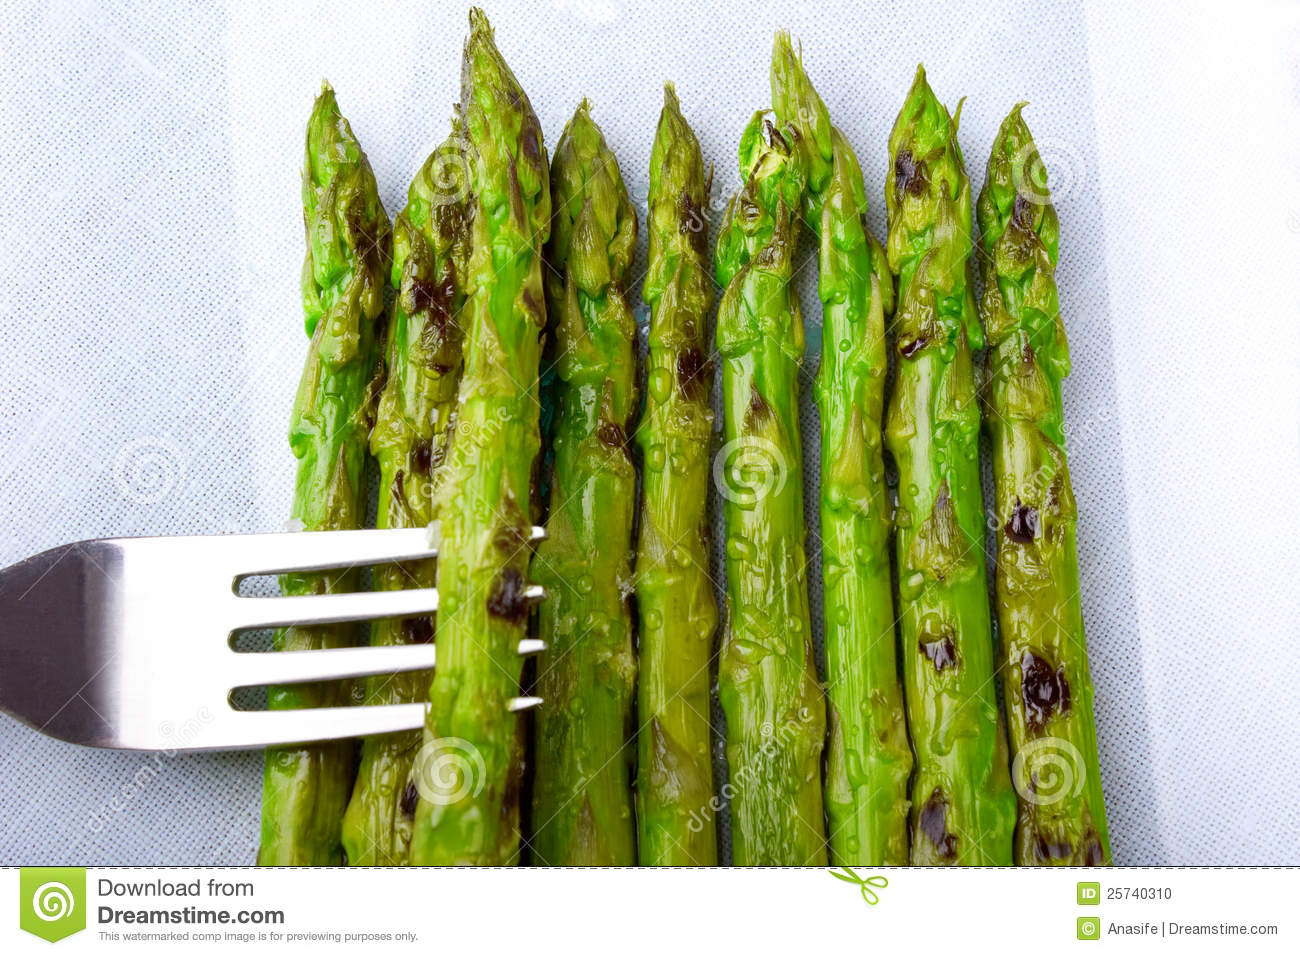 Asparagus with droplets of steam